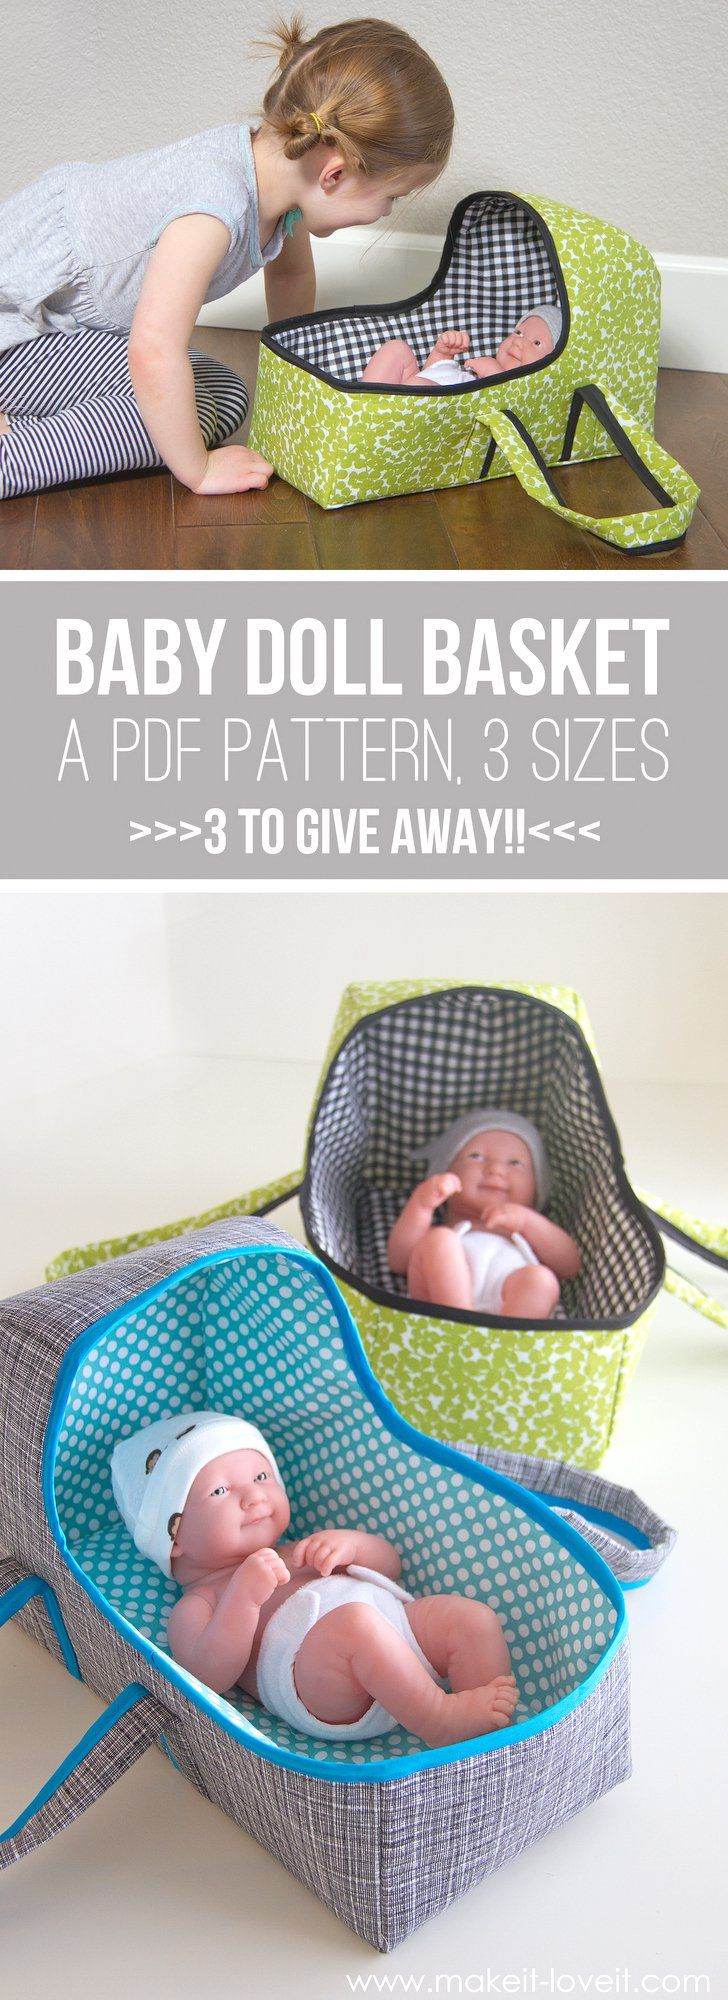 Baby Doll Basket Carrier...a PDF pattern, 3 sizes, plenty of pictures.  3 patterns to GIVE AWAY!   via Make It and Love It